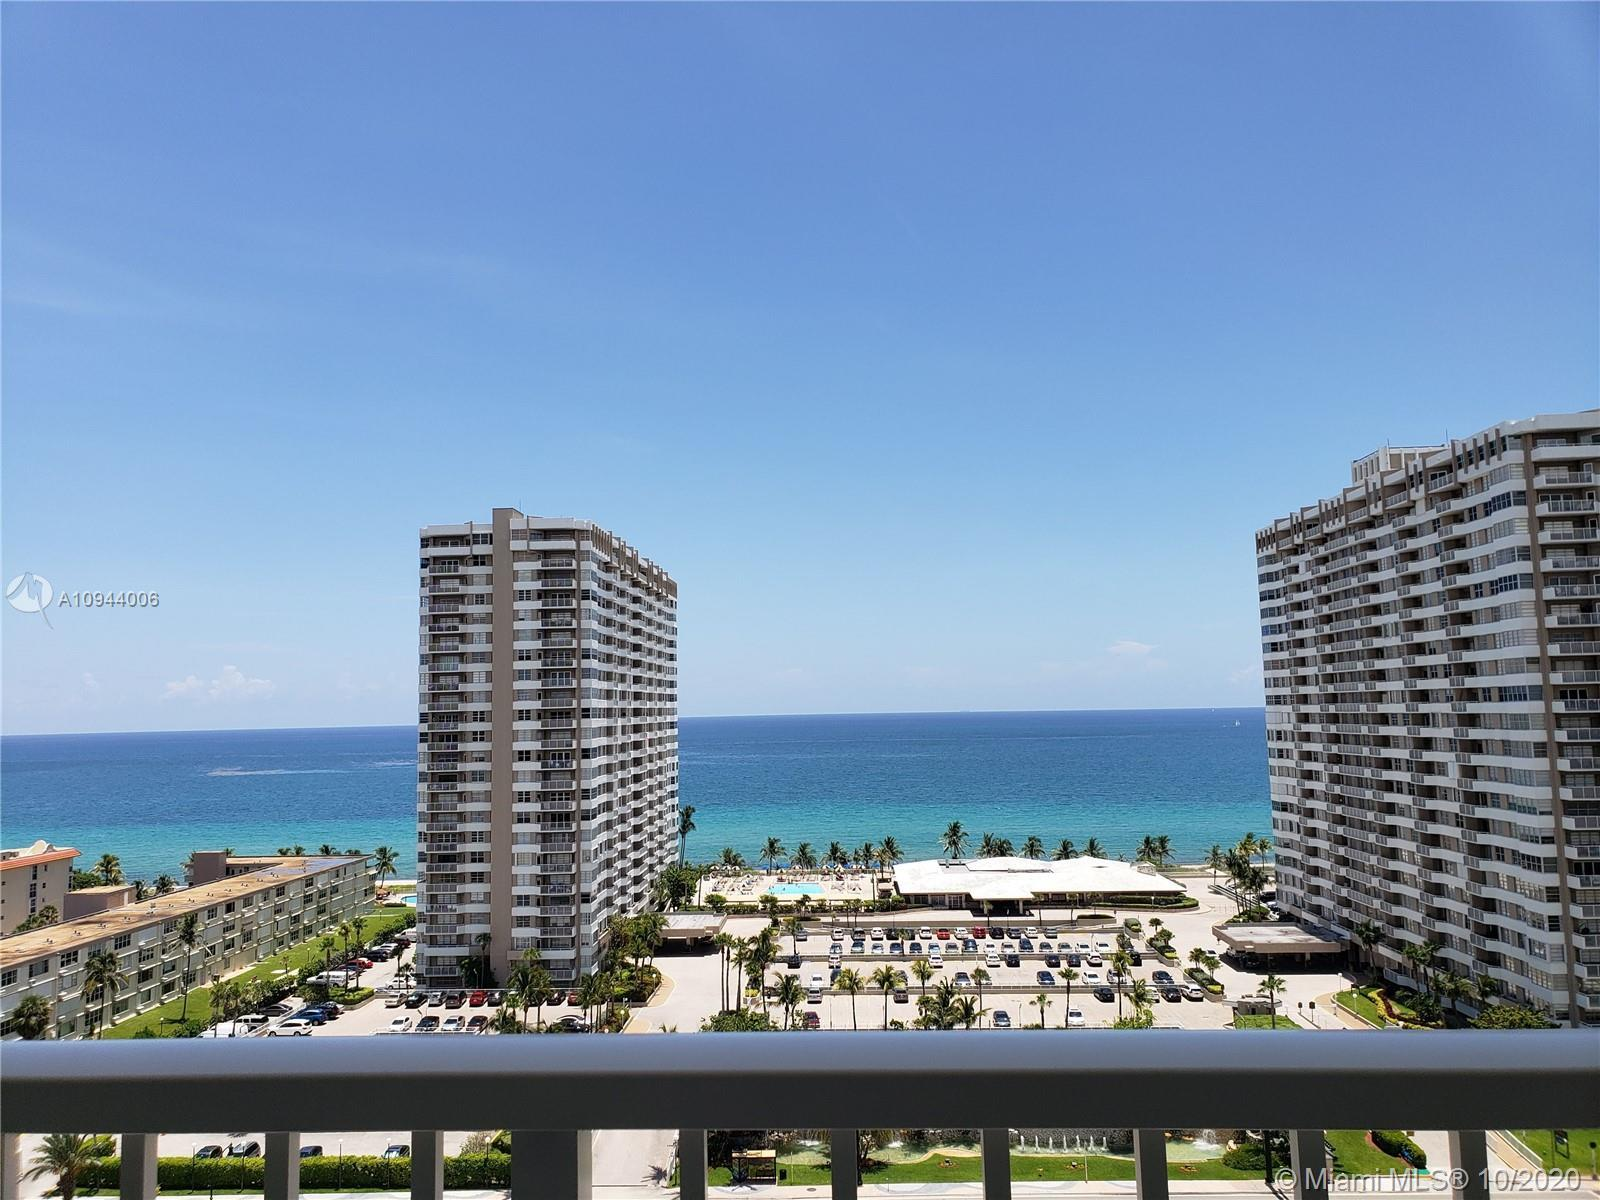 Welcome to paradise this unit faces directly towards the ocean with 180' views of city and water fro